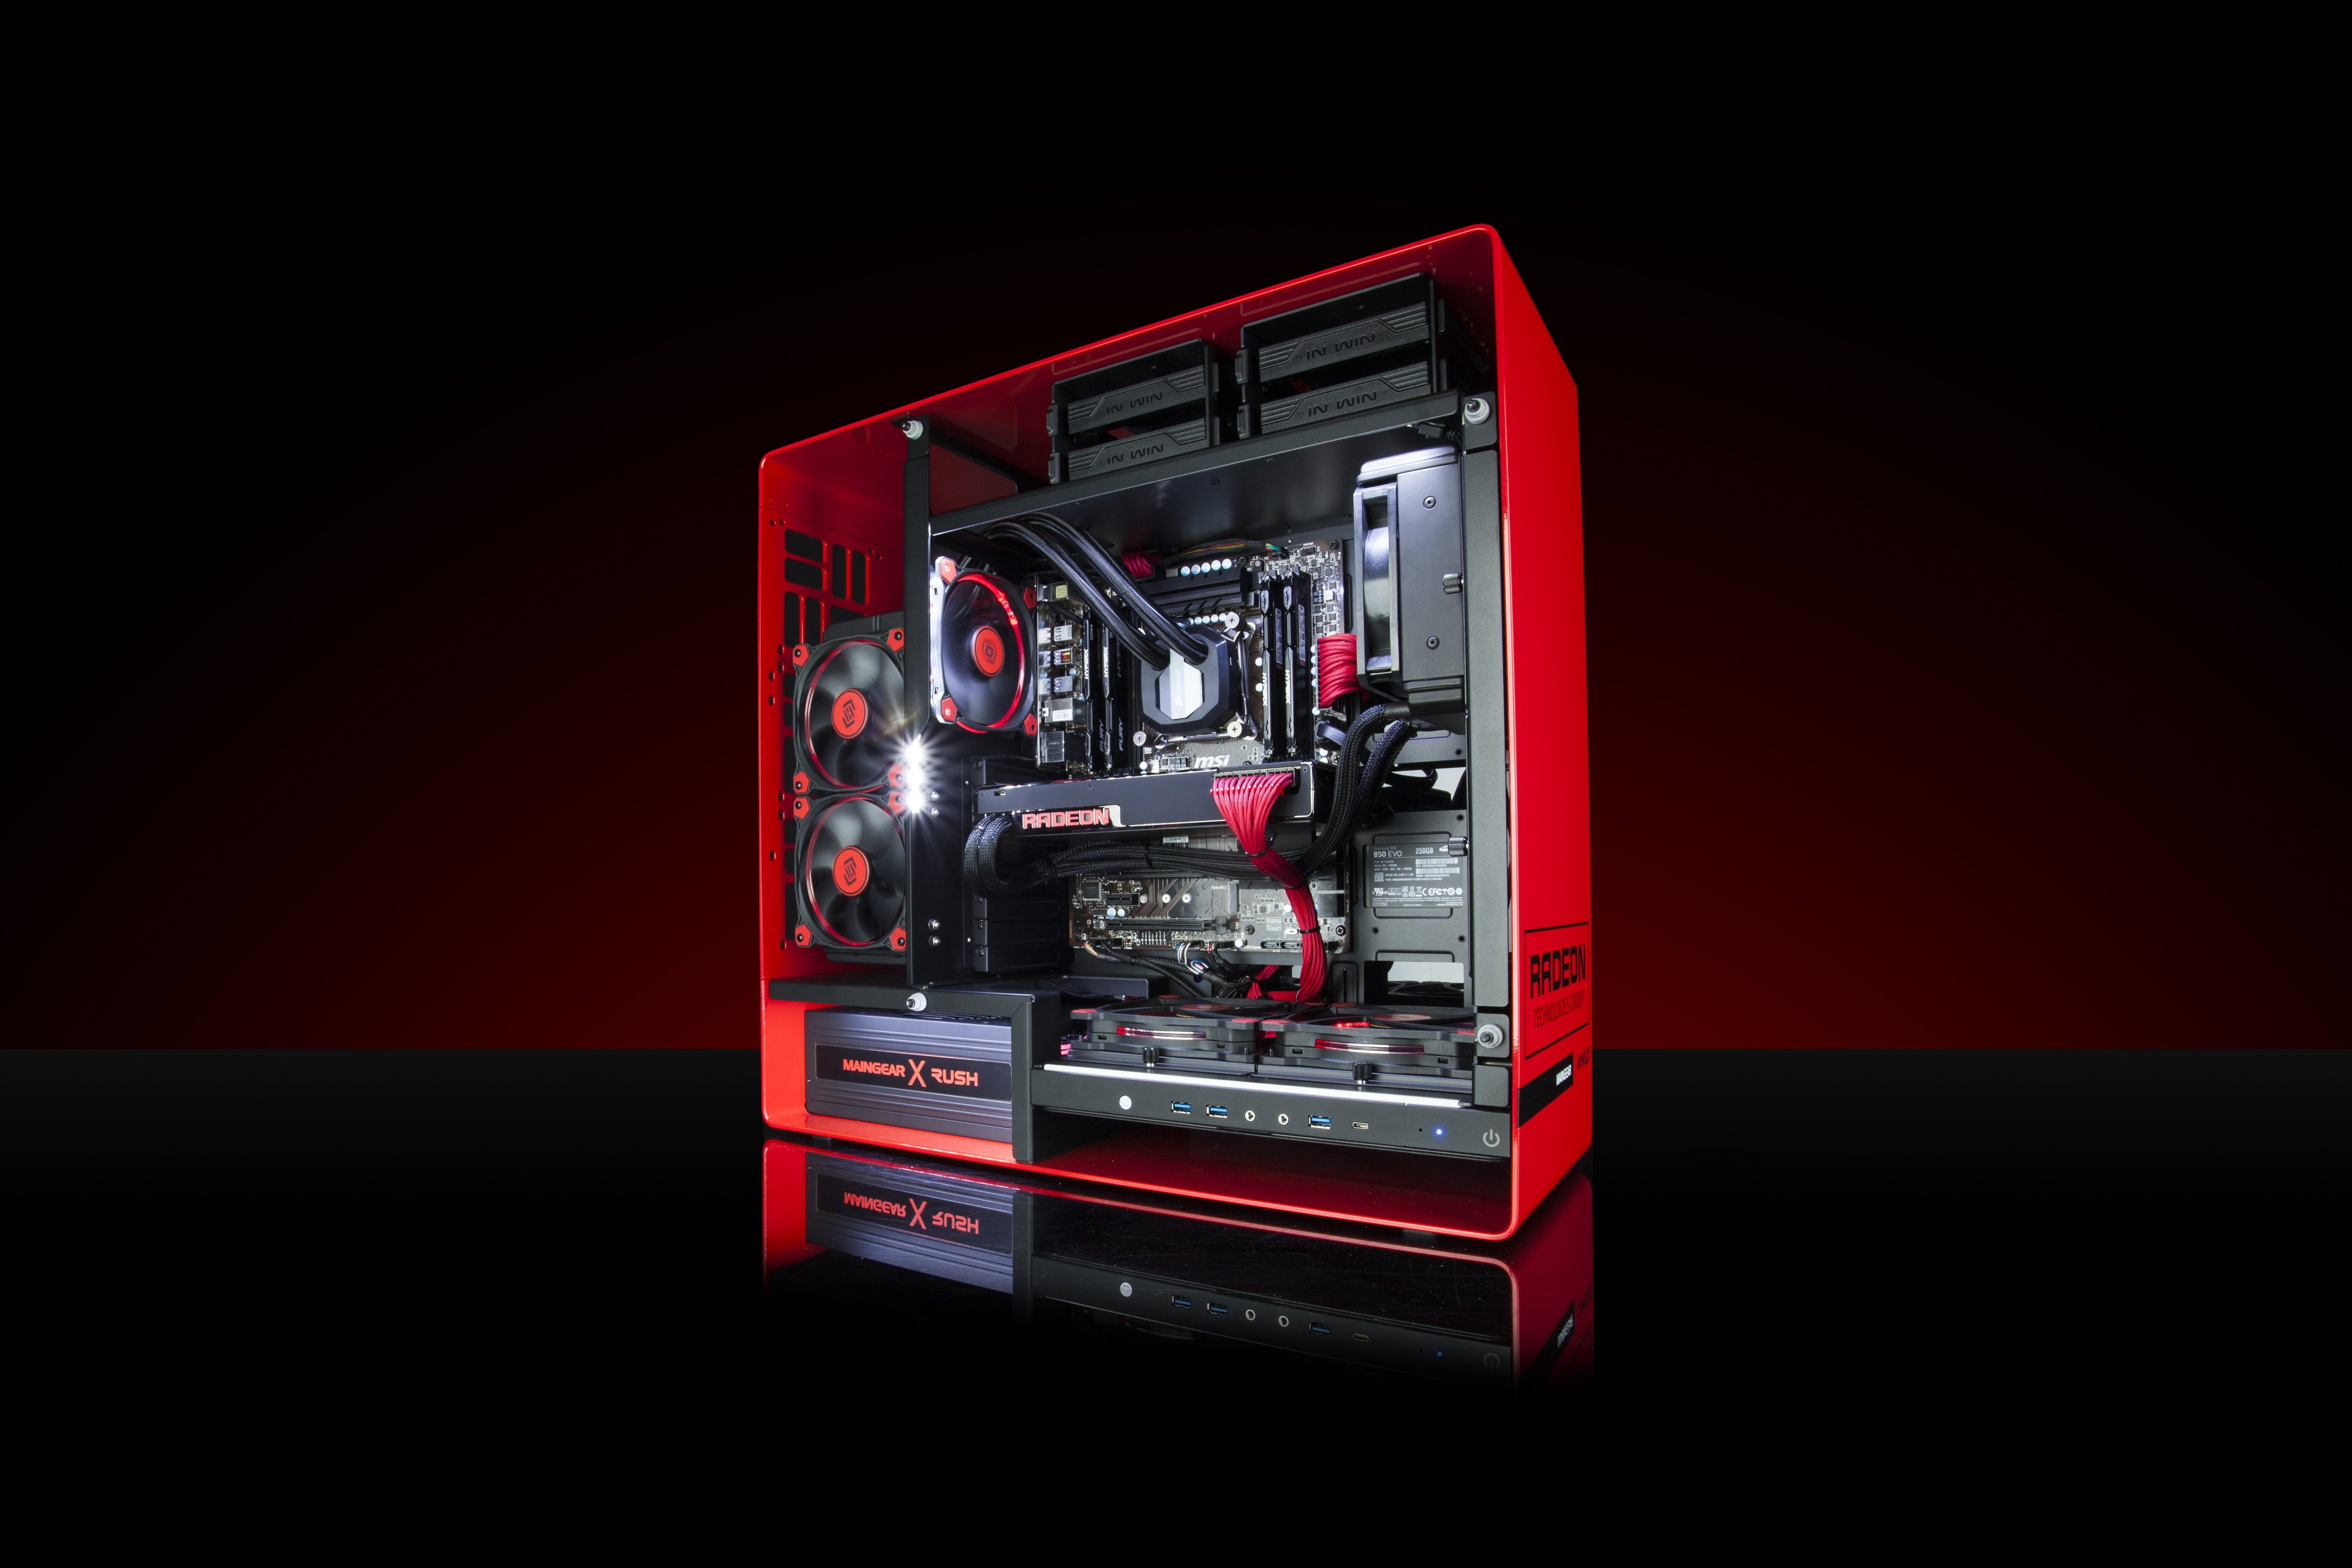 Red and black computer tower computer technology PC